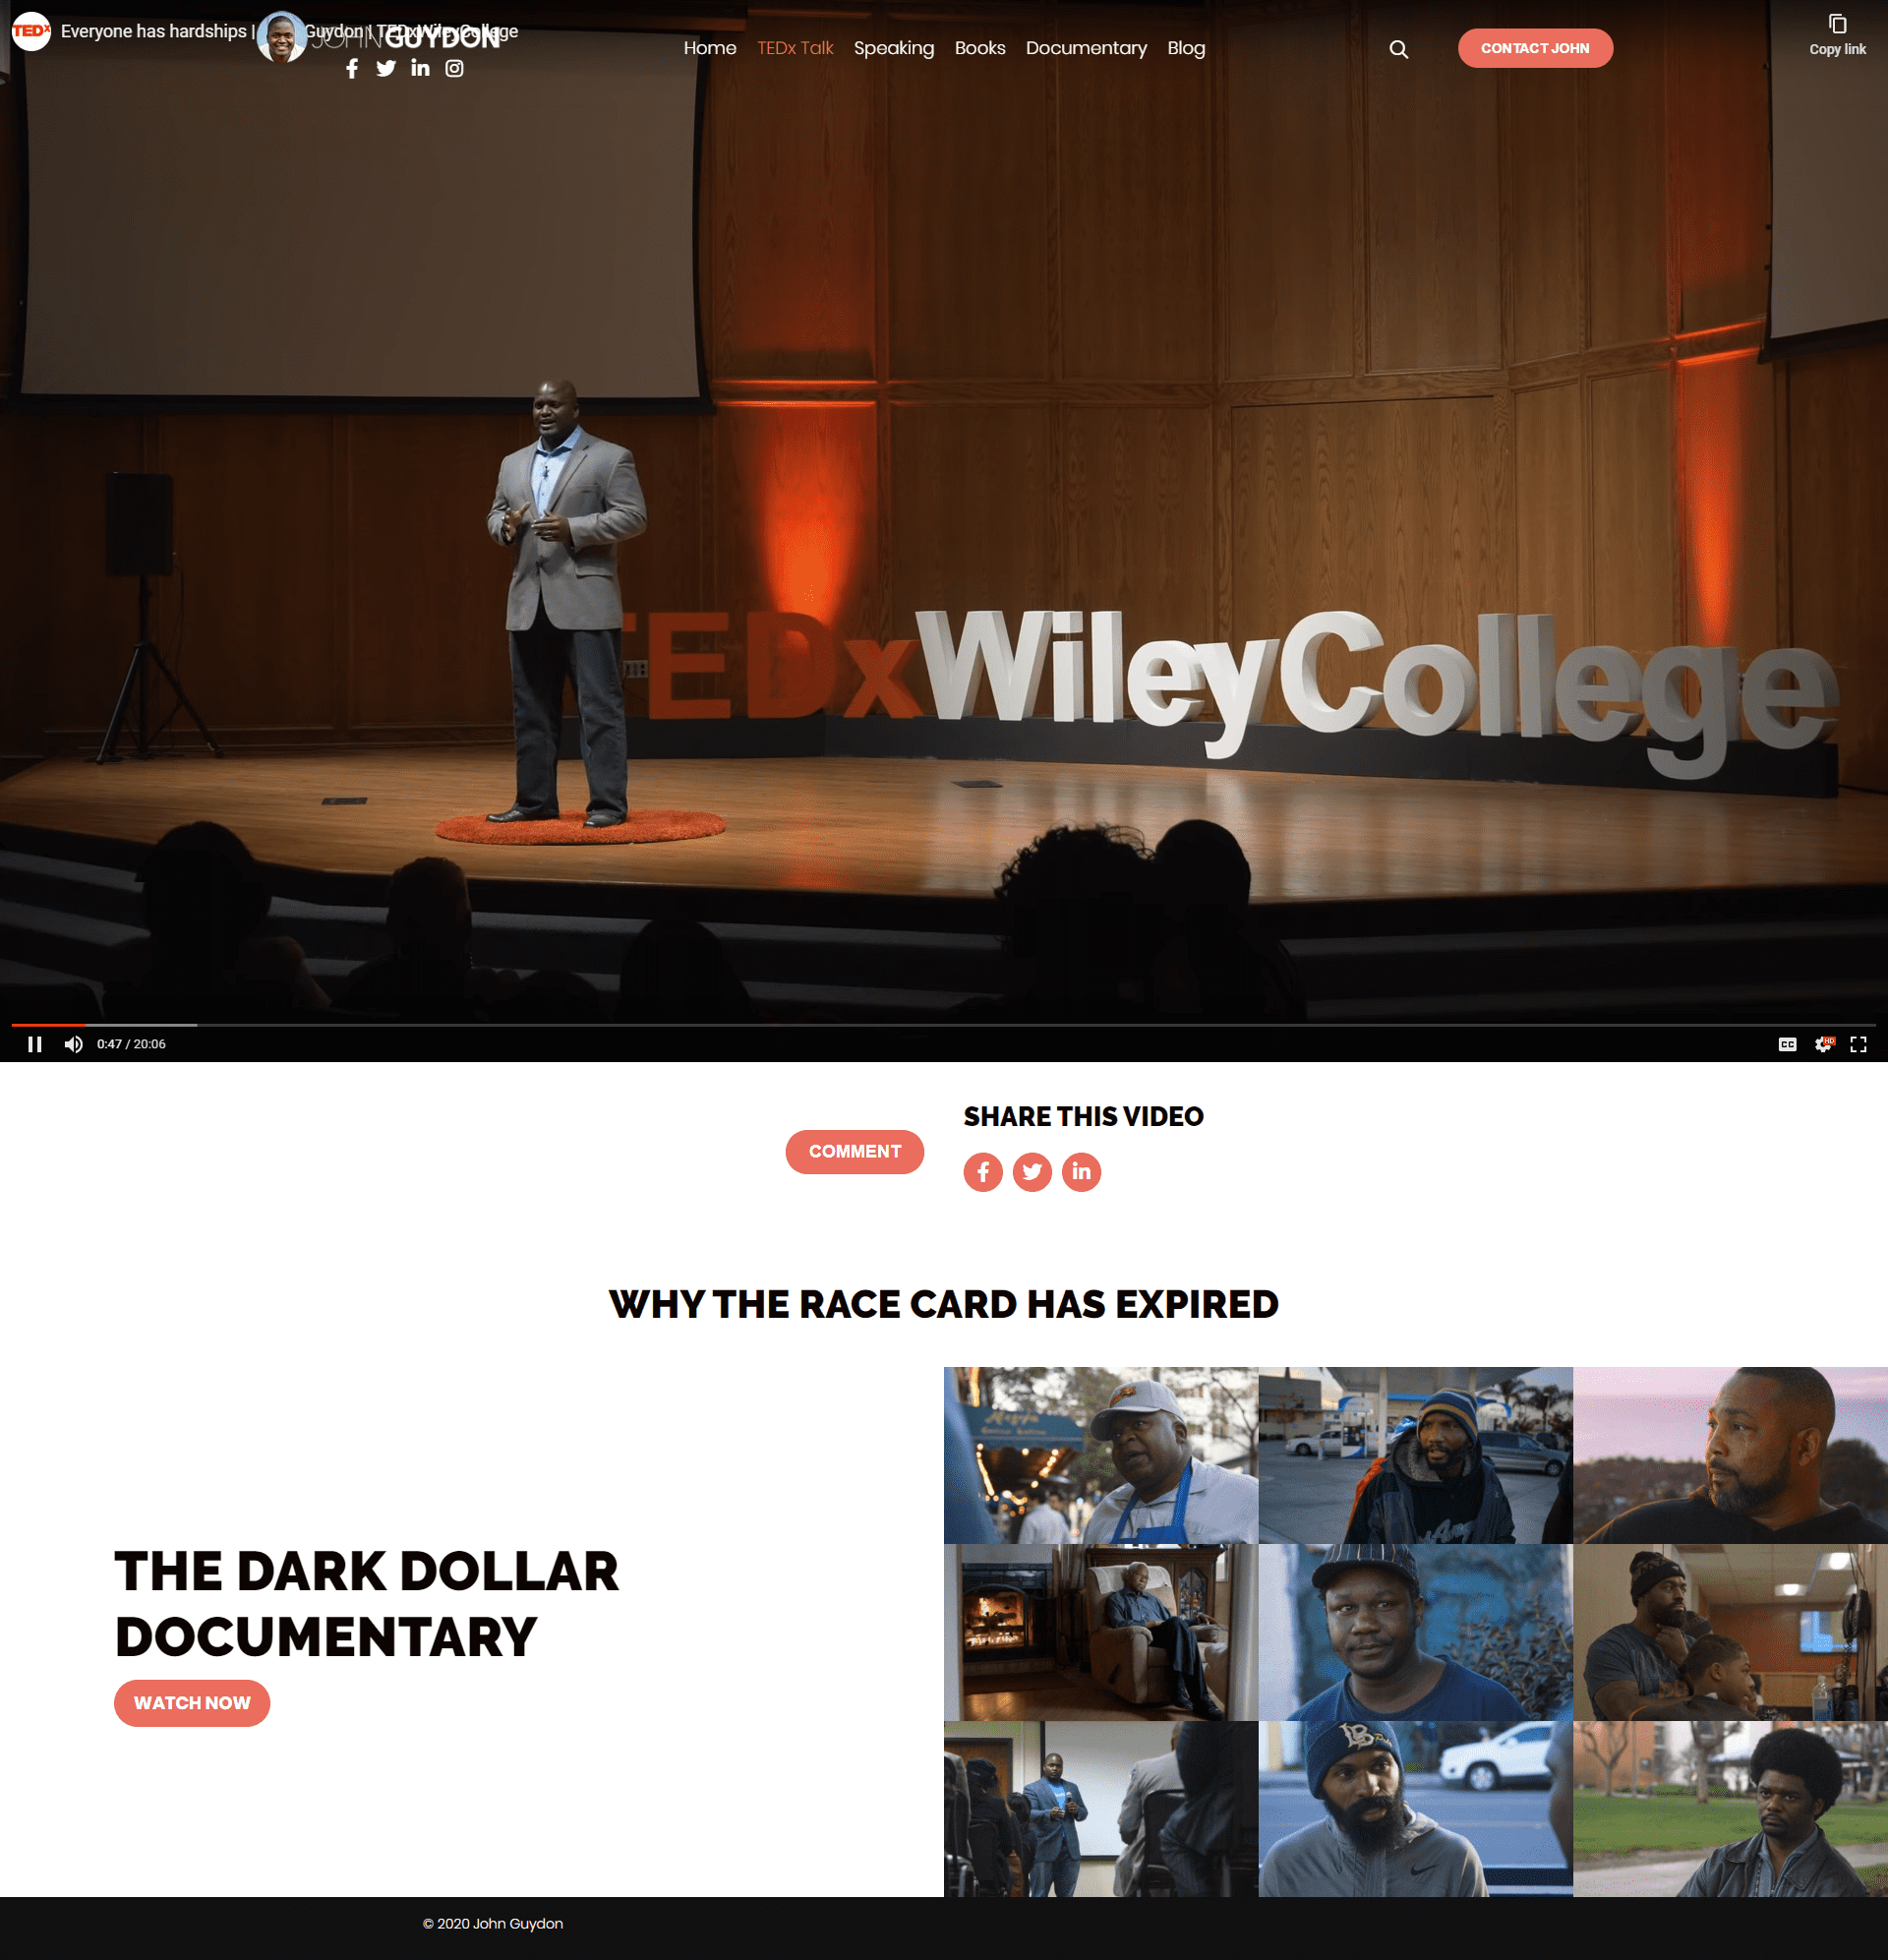 screencapture-johnguydon-tedx-talk